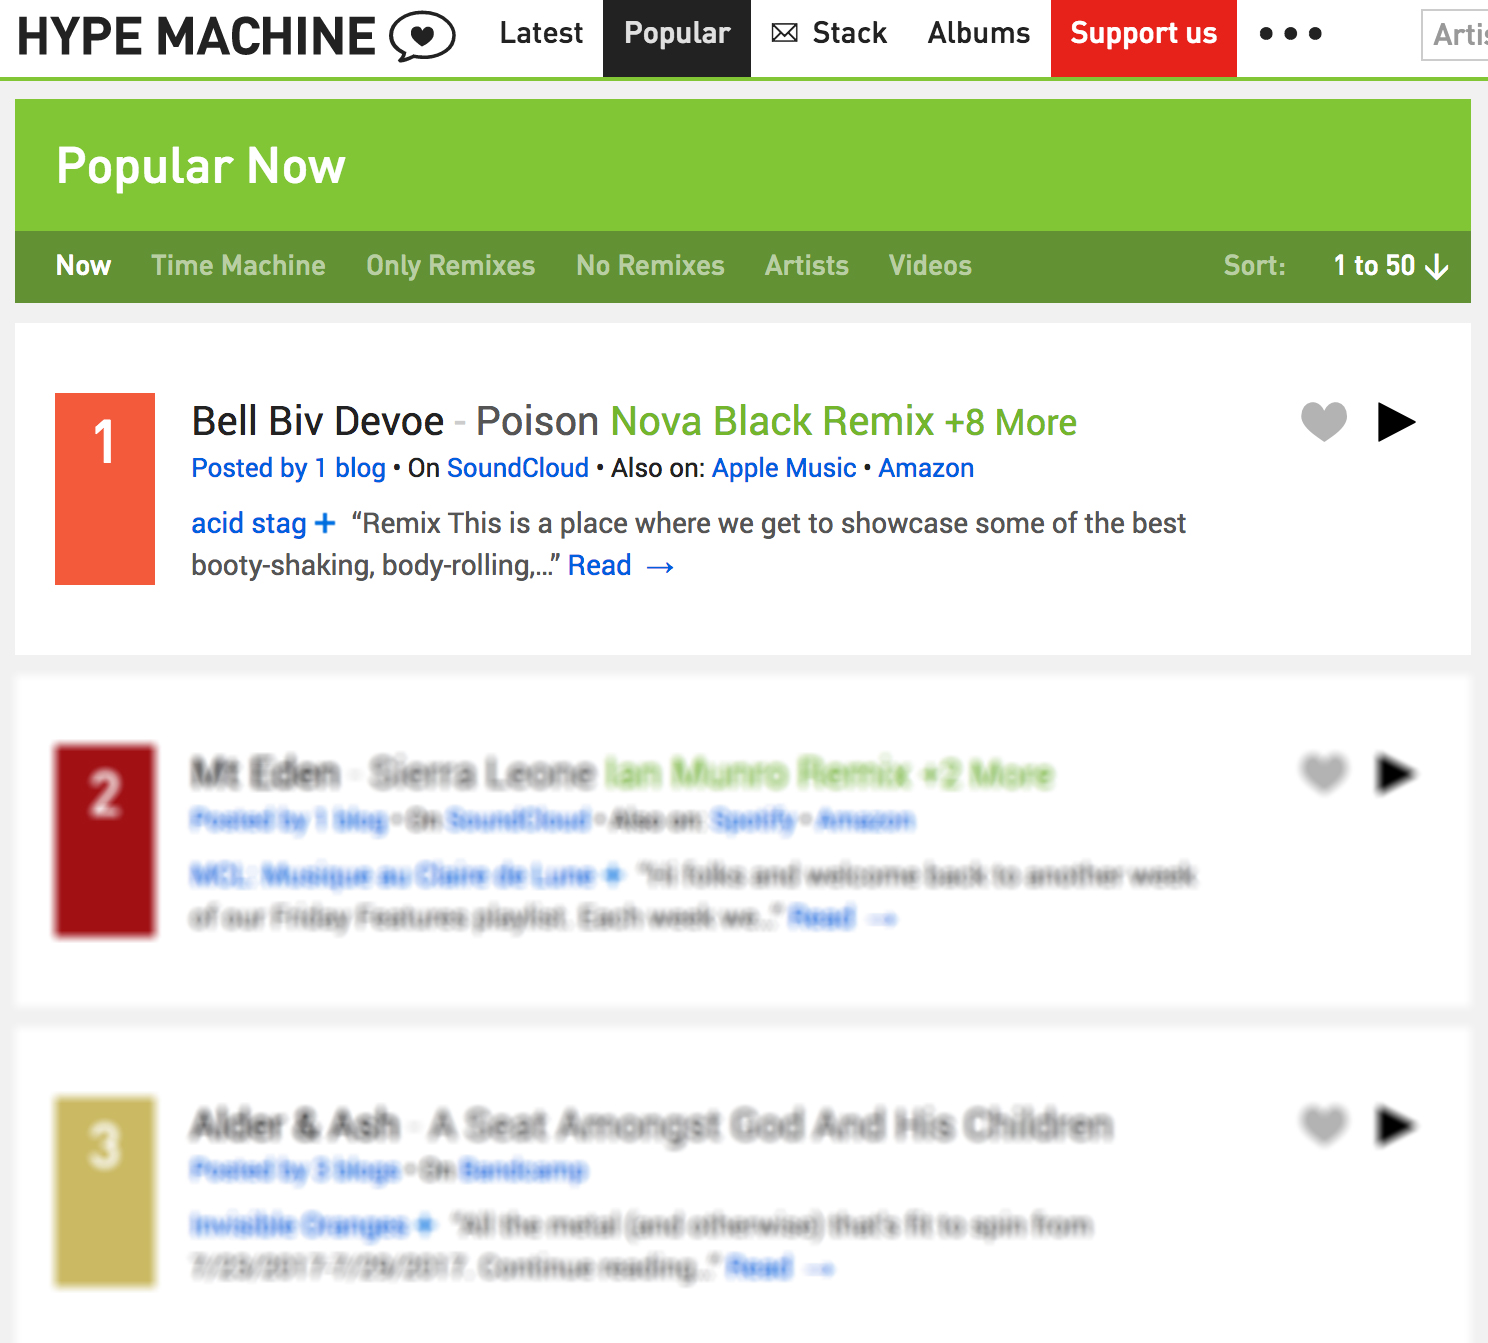 Poison Remix: #1 on Hype Machine Most Popular Charts!